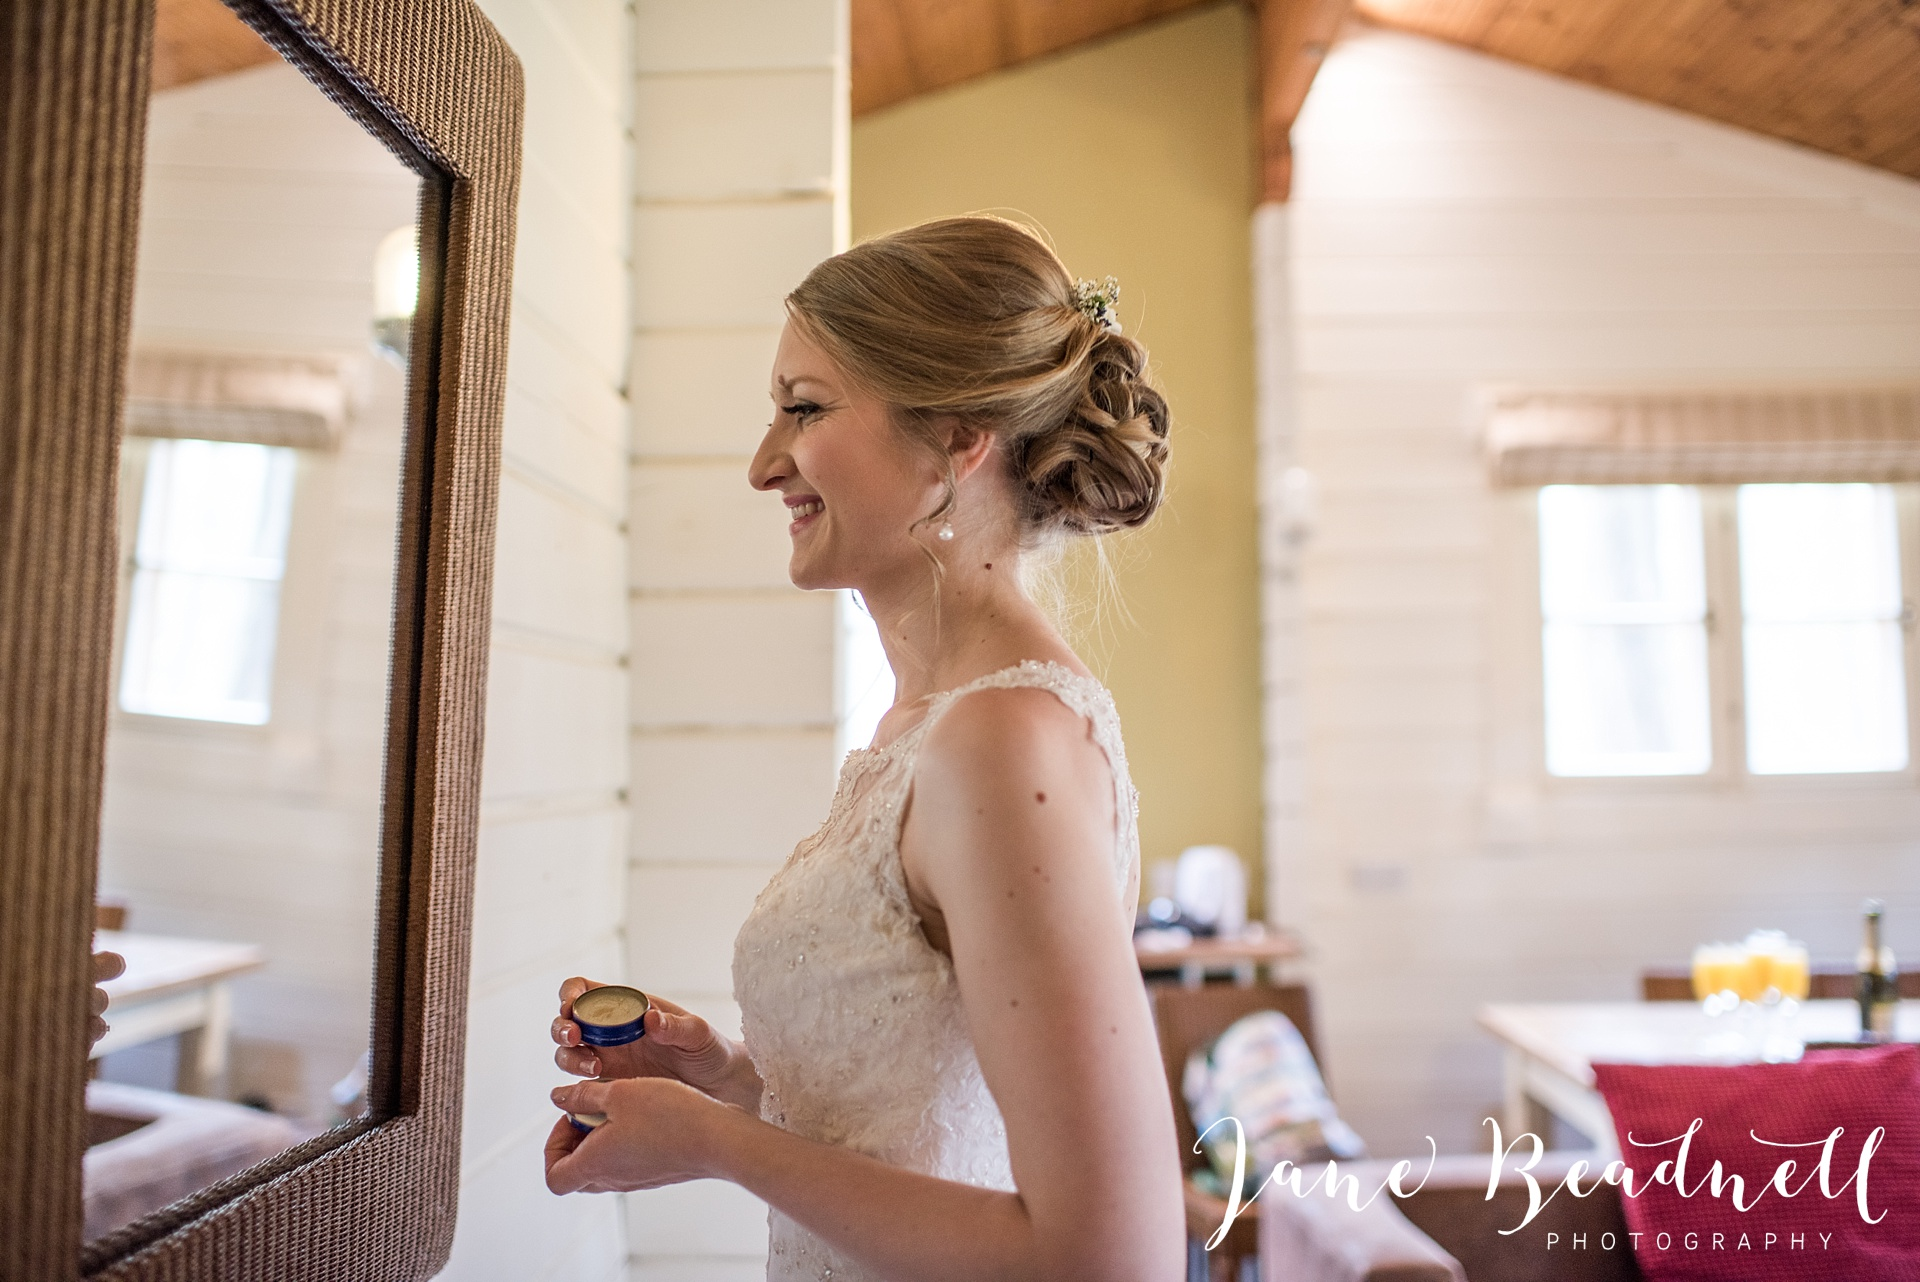 Otley Chevin Lodge wedding photography by Jane Beadnell Photography Leeds_0028